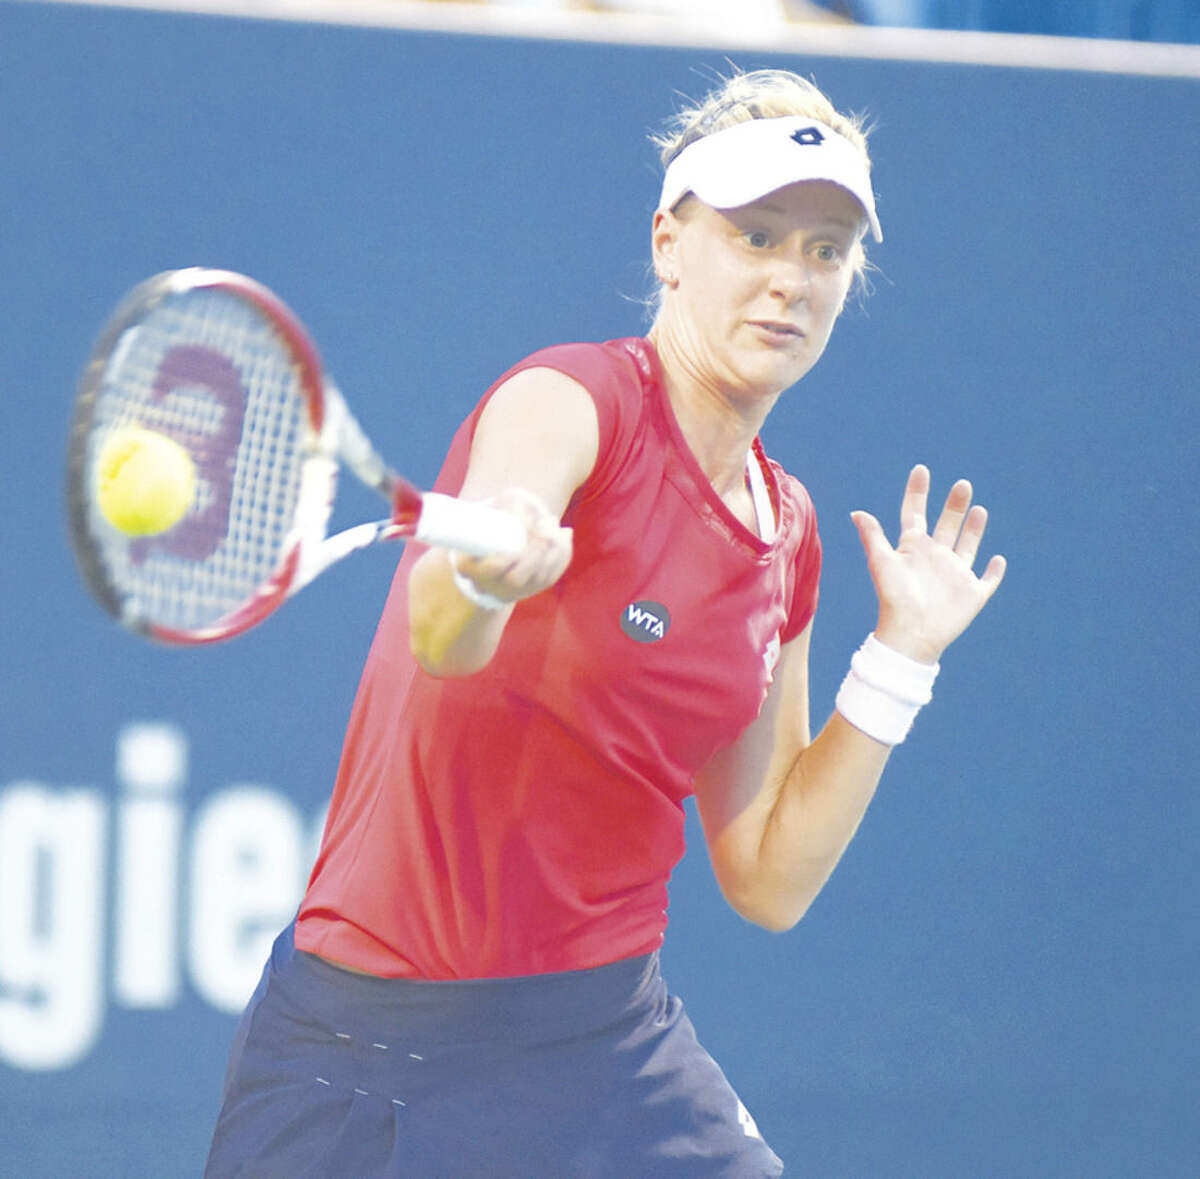 Hour photo/John Nash American tennis player Alison Riske hits a forehand return during her first round match against Caroline Wozniacki of Denmark on Tuesday night at the Connecticut Open in New Haven. Wozniacki coasted to a 6-0, 6-2 win.